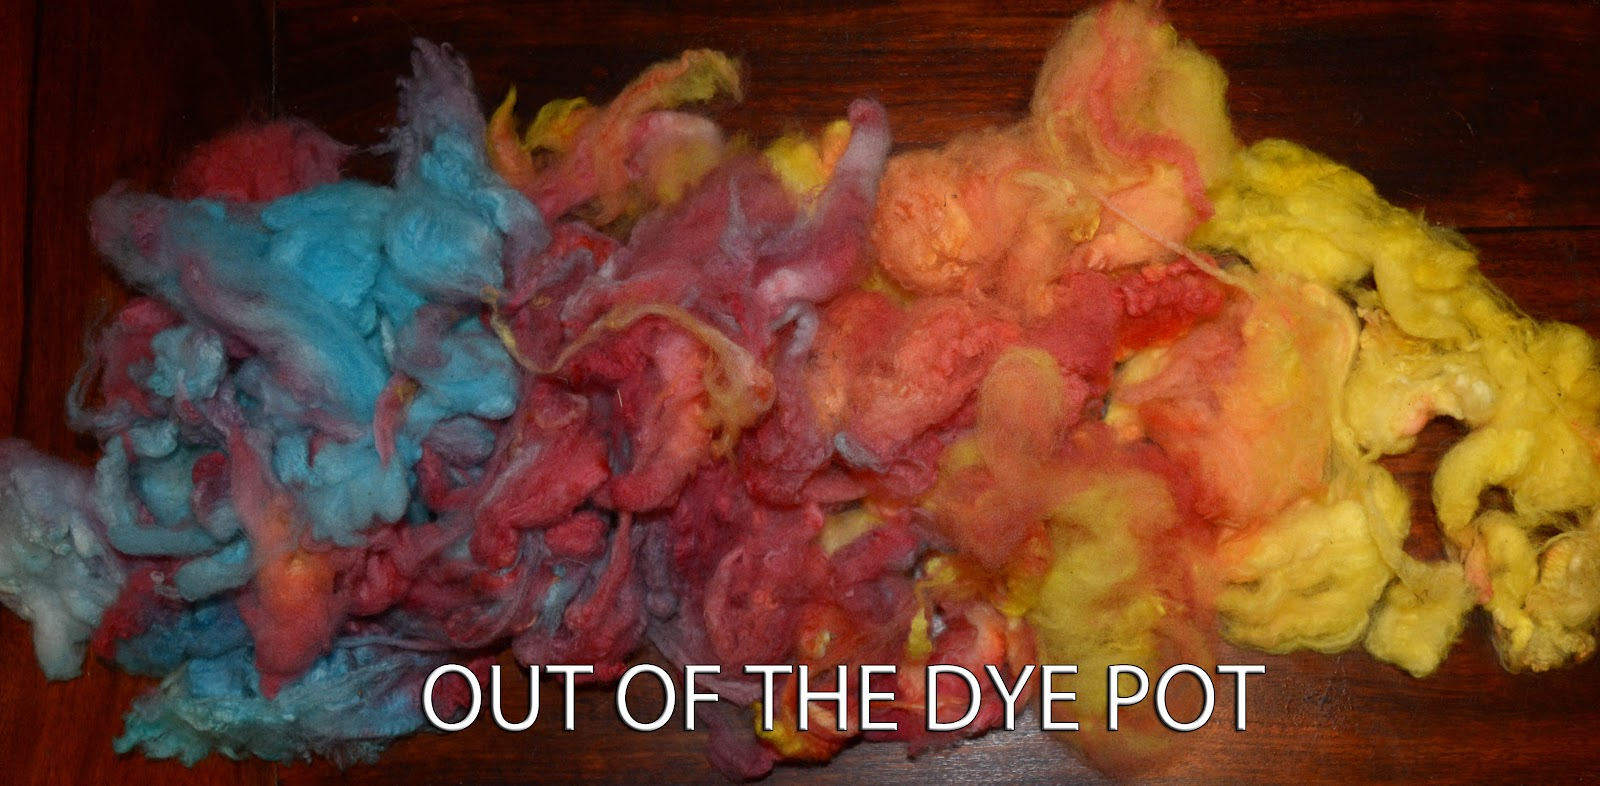 Out of the dye pot.jpg